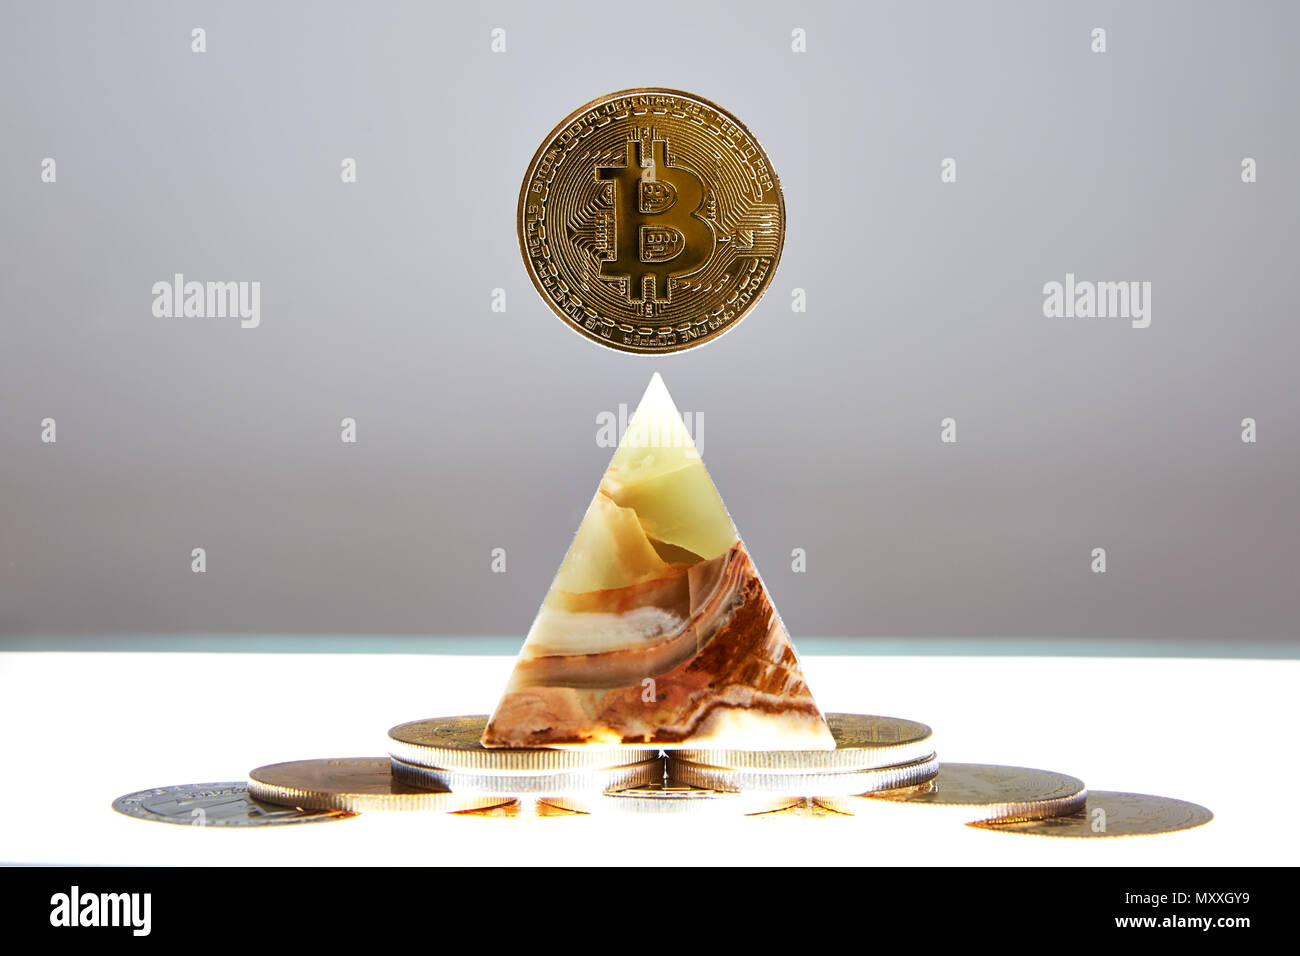 Bitcoin Coin sitting a top a translucent Onyx Stone. Stone symbolizes, personal power, change, facing fears.  All things people who trade crypro face Stock Photo